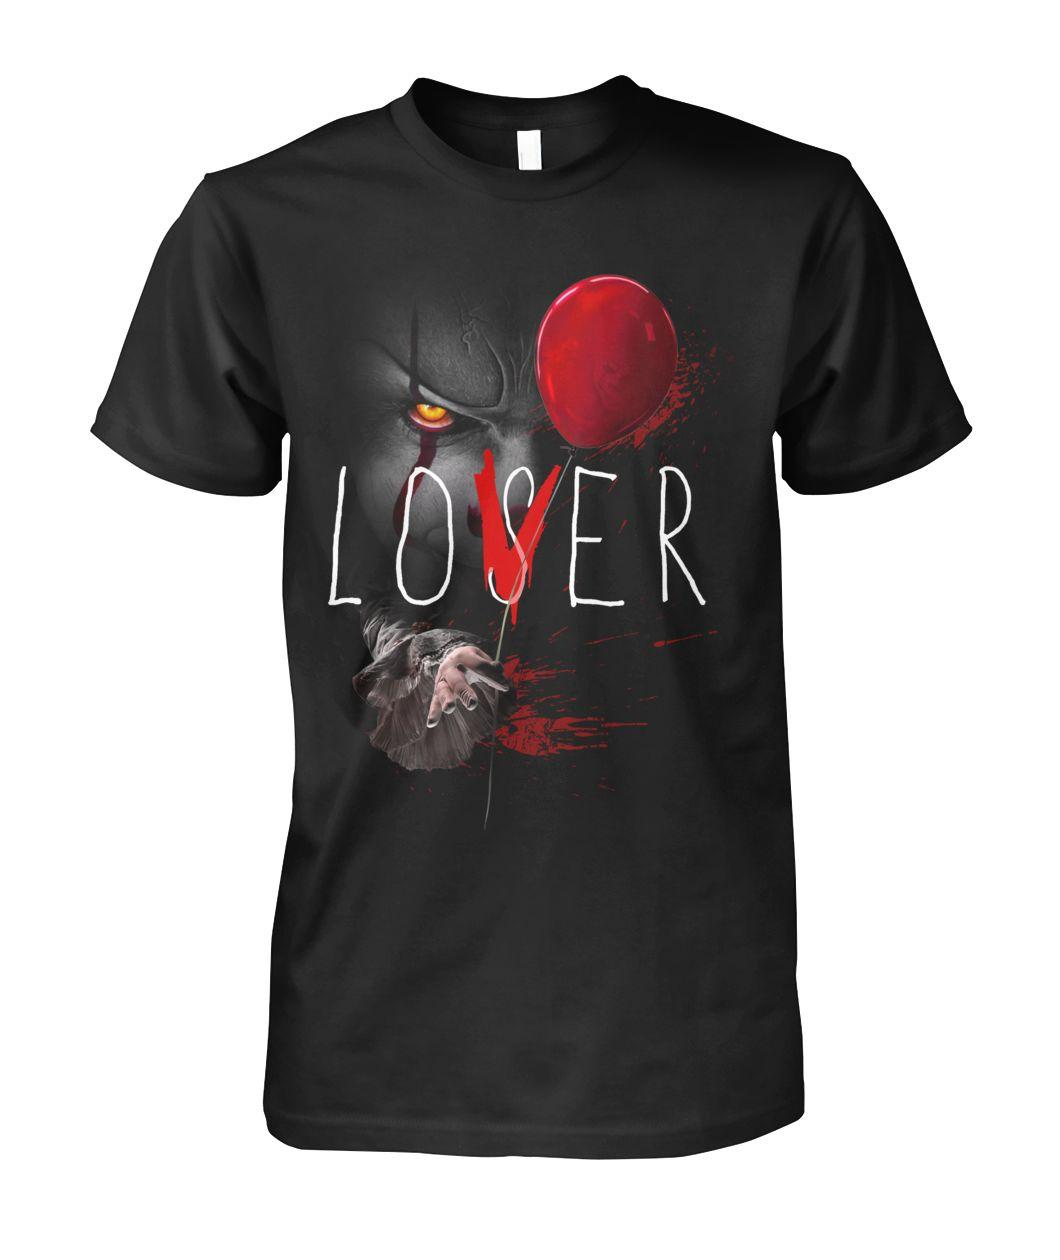 Pennywise It Lover Loser Halloween shirt